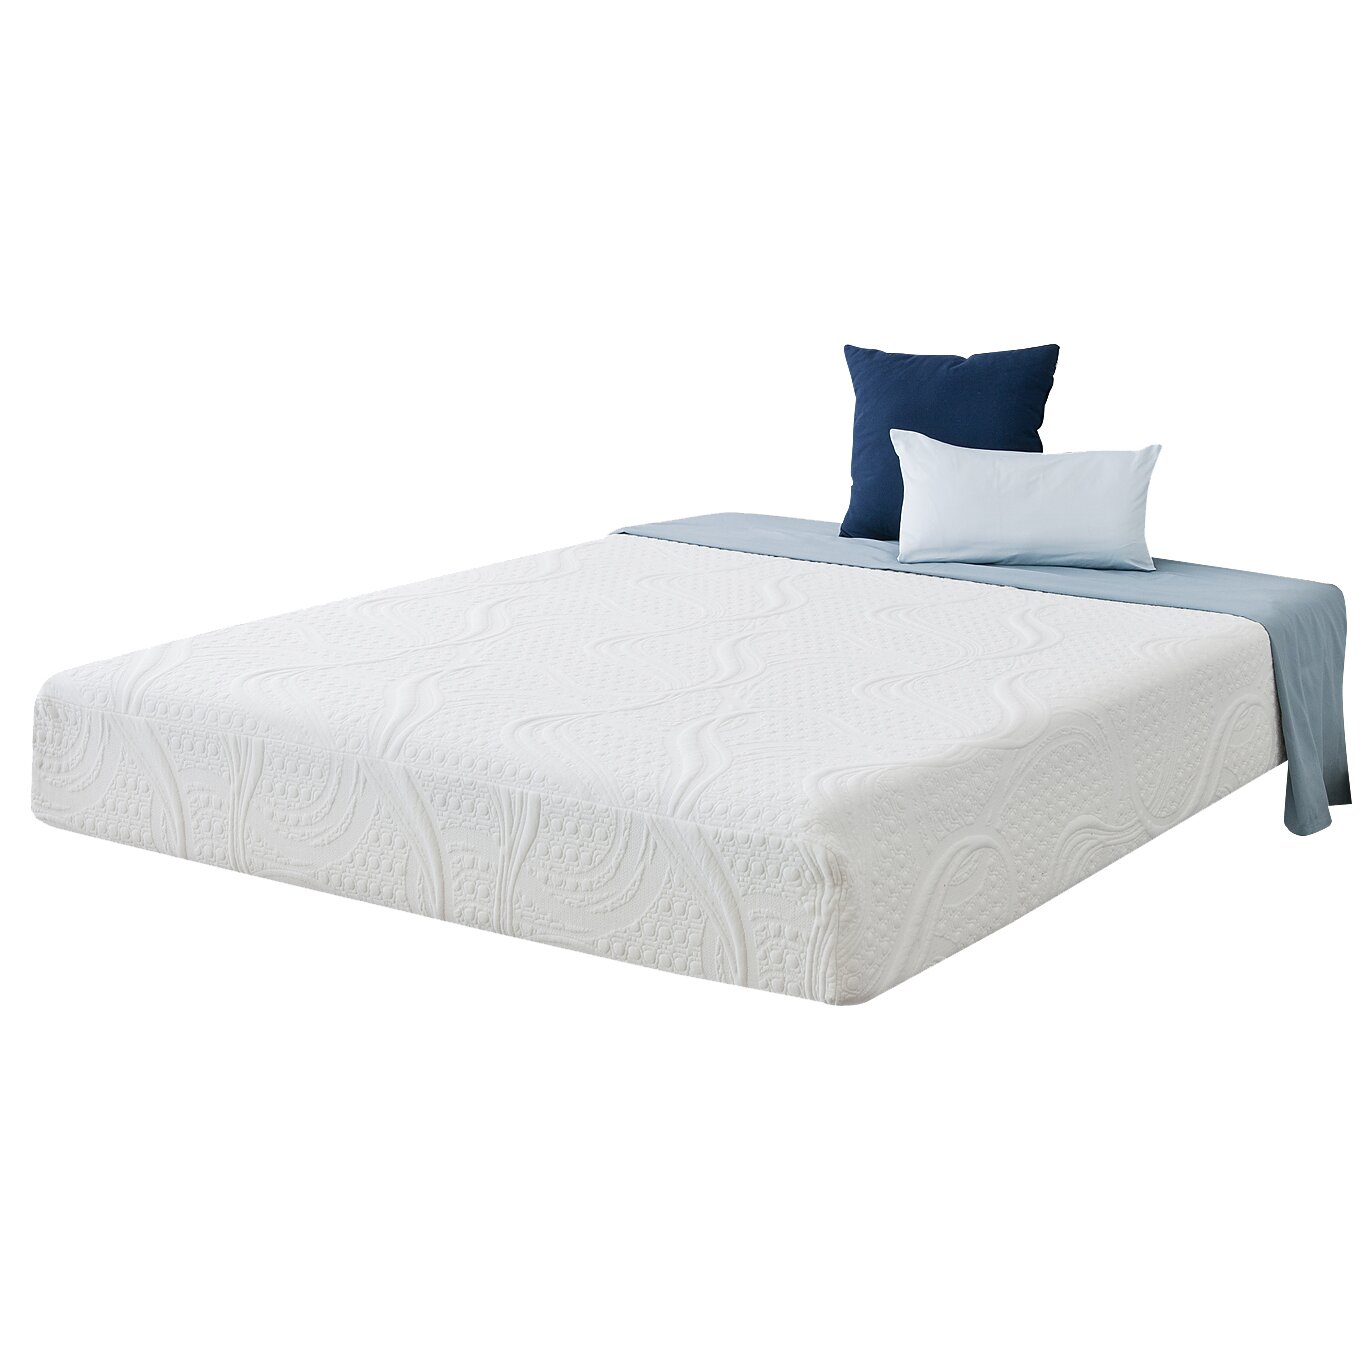 "Anew Edit 8"" Firm Memory Foam Mattress & Reviews"